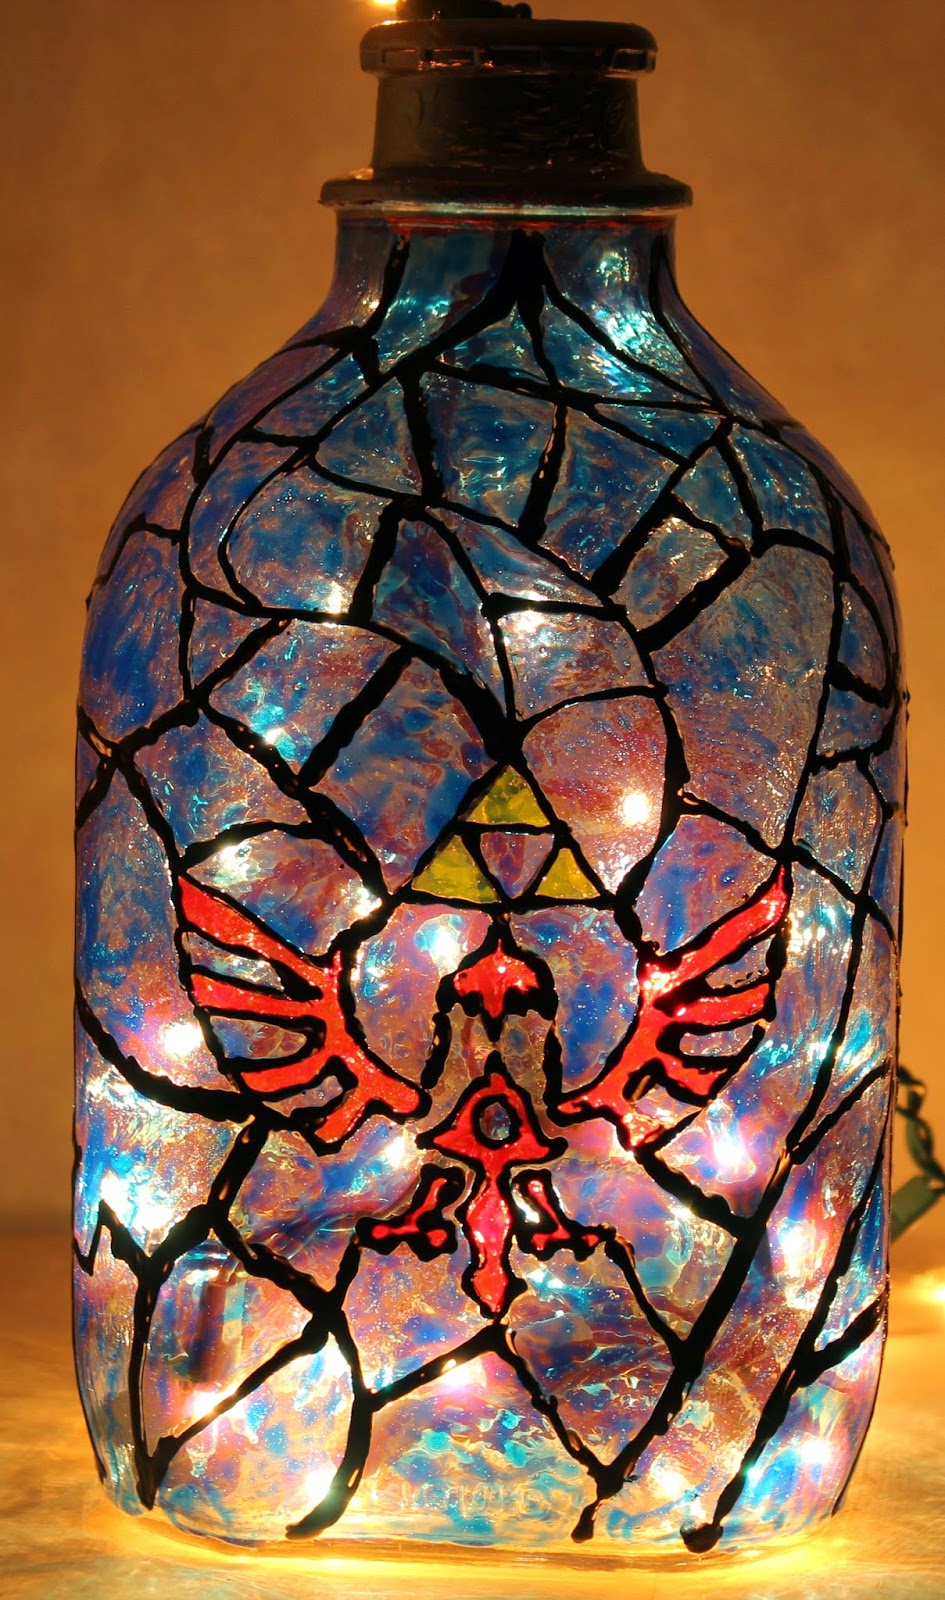 One Awesome Geeky Lamp For All Your Geeky Needs. I Found That It Makes More  Of A Really Cool Decorative Lamp Than Anything!!